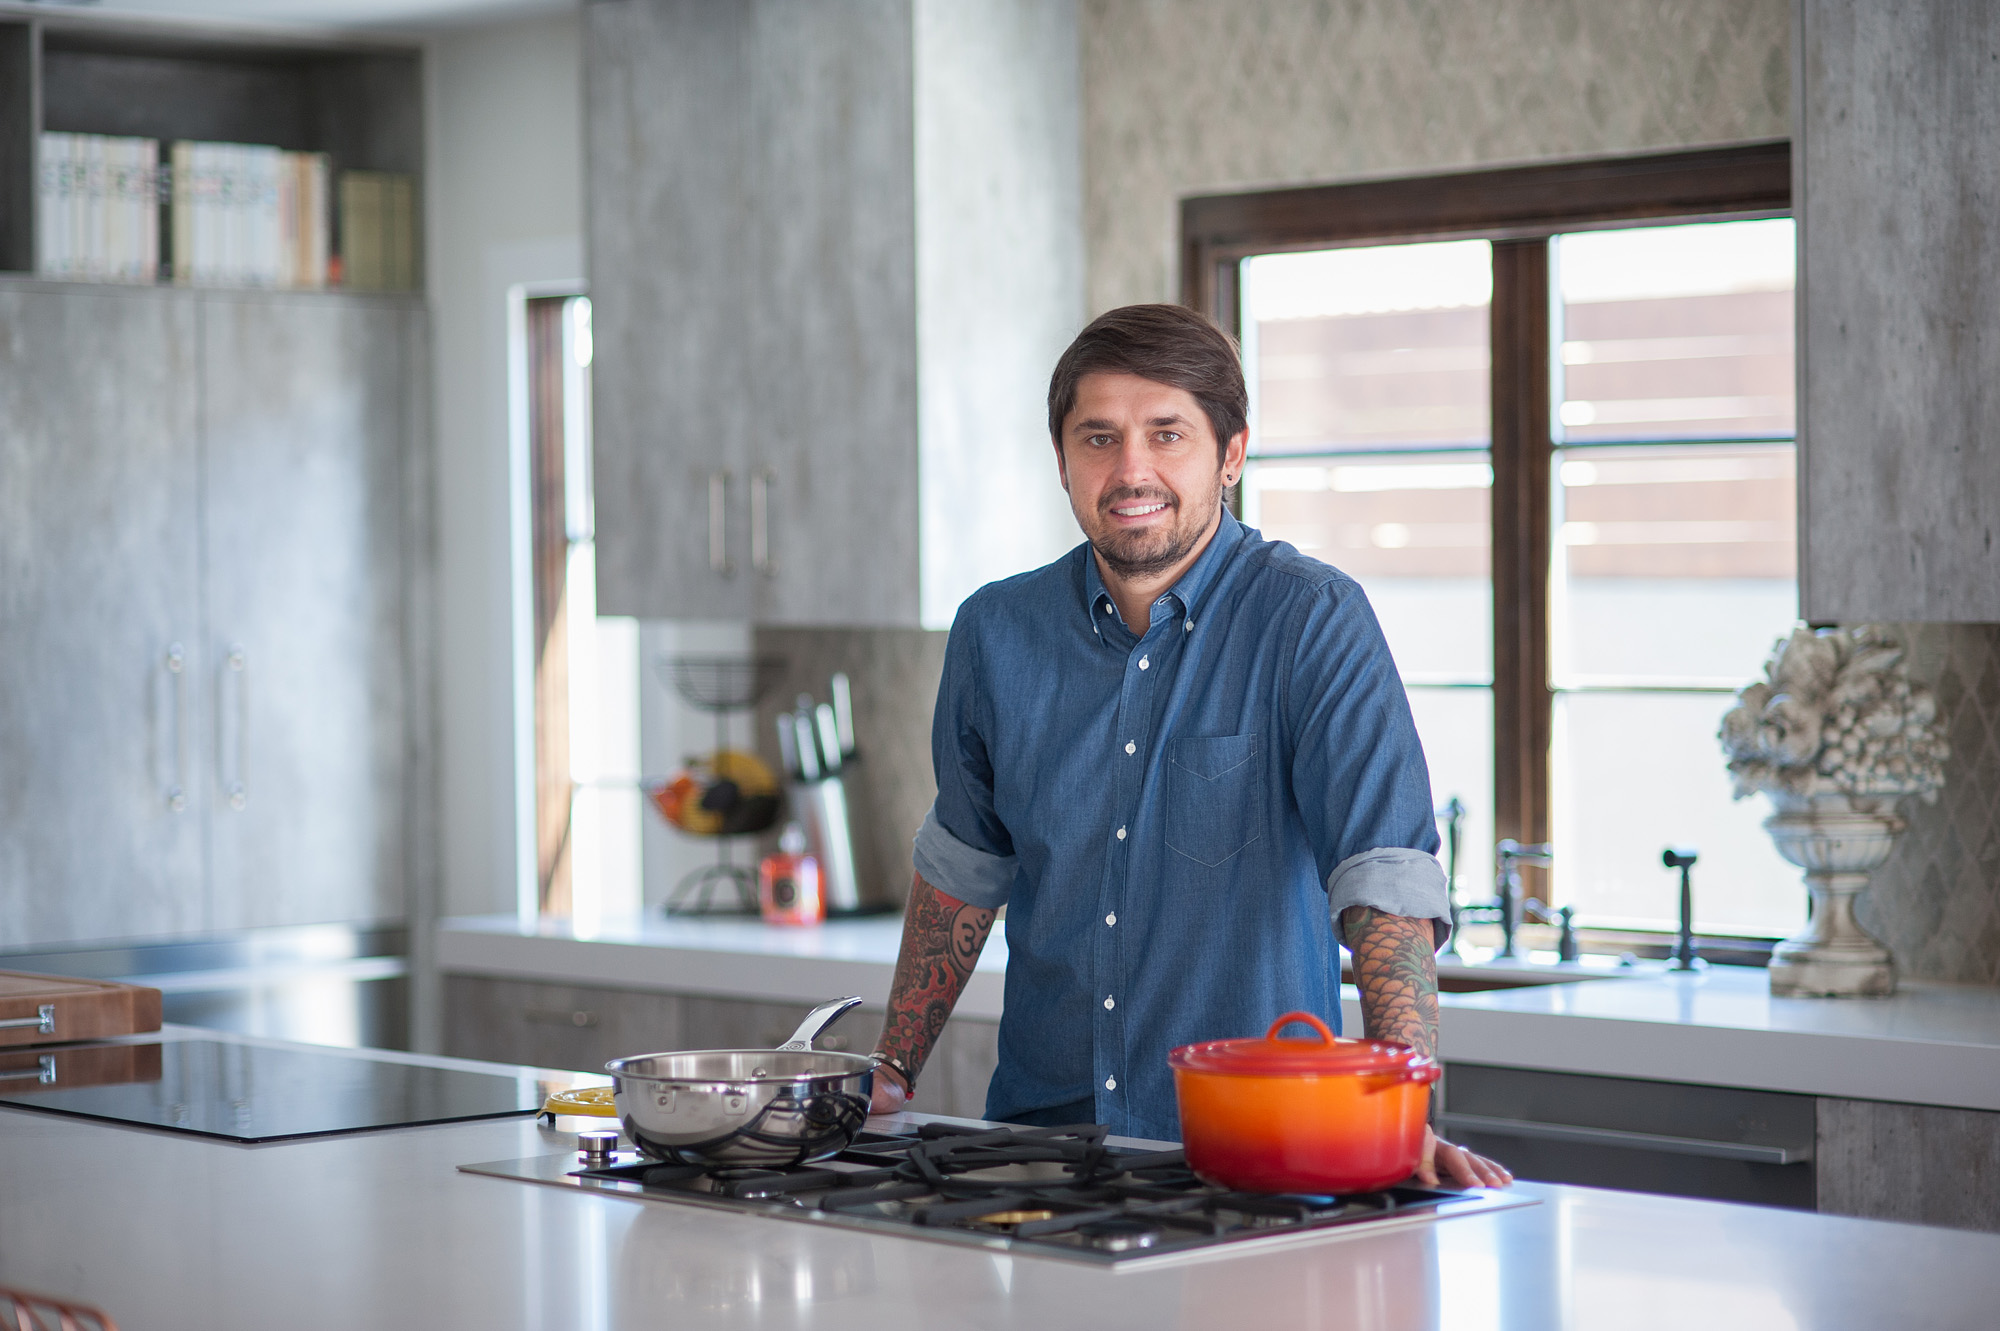 Ludo Lefebvre's home kitchen, looking clean as the chef stands behind his range.